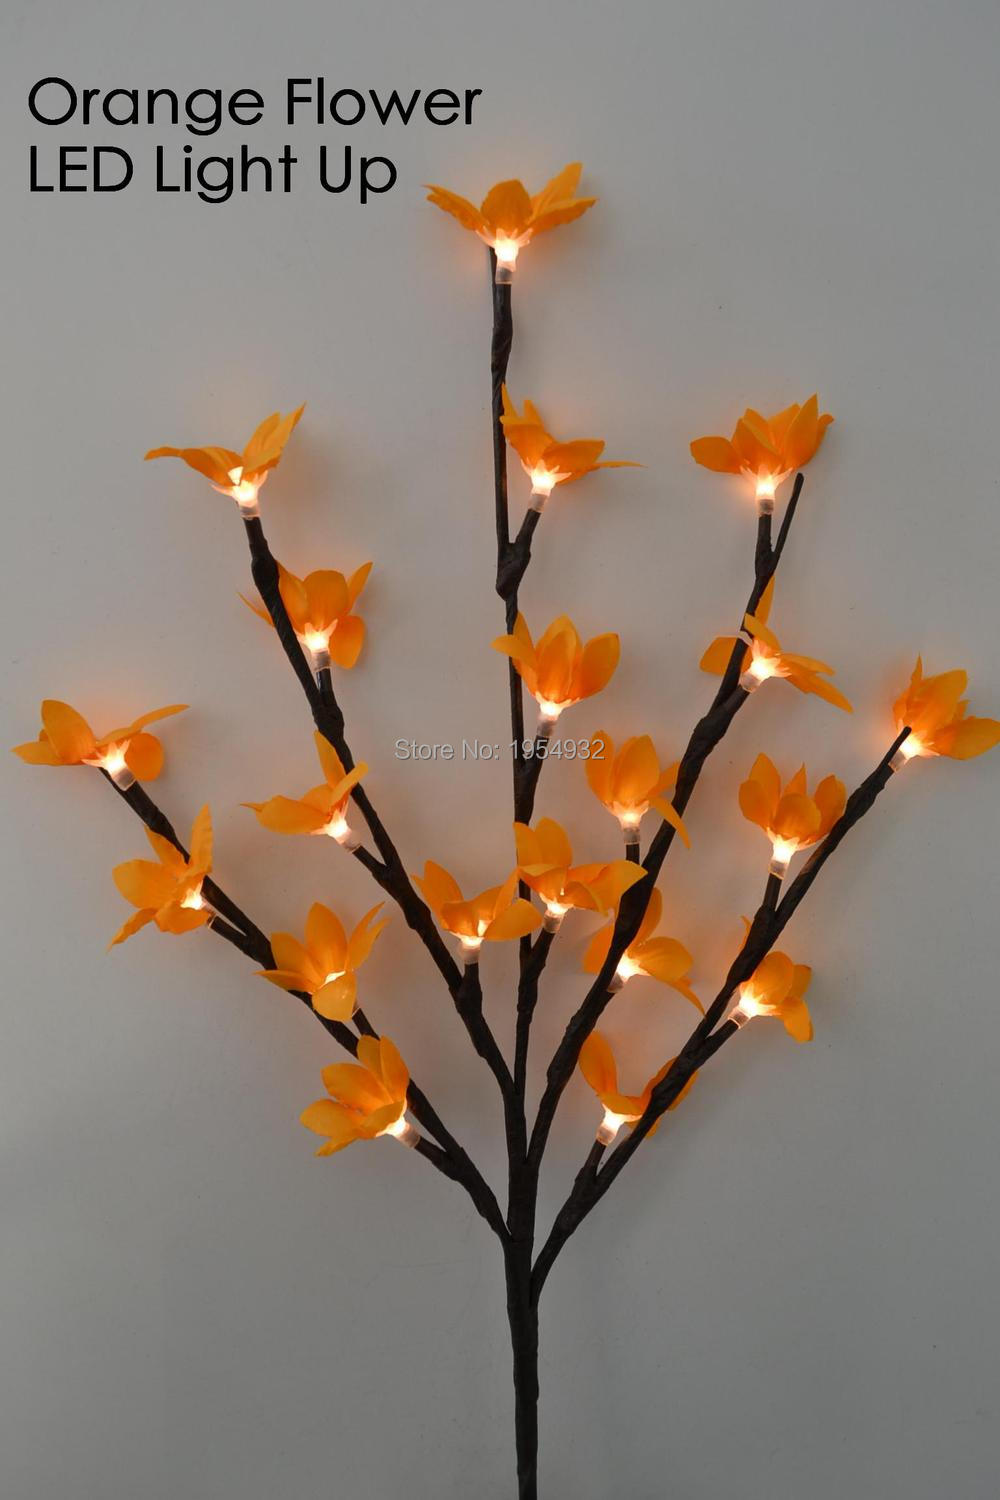 Online get cheap light up flowers aliexpress alibaba group led battery blossom forsytia branch light 20 20led light up forsytia branch wedding table decoration branch twig light reviewsmspy